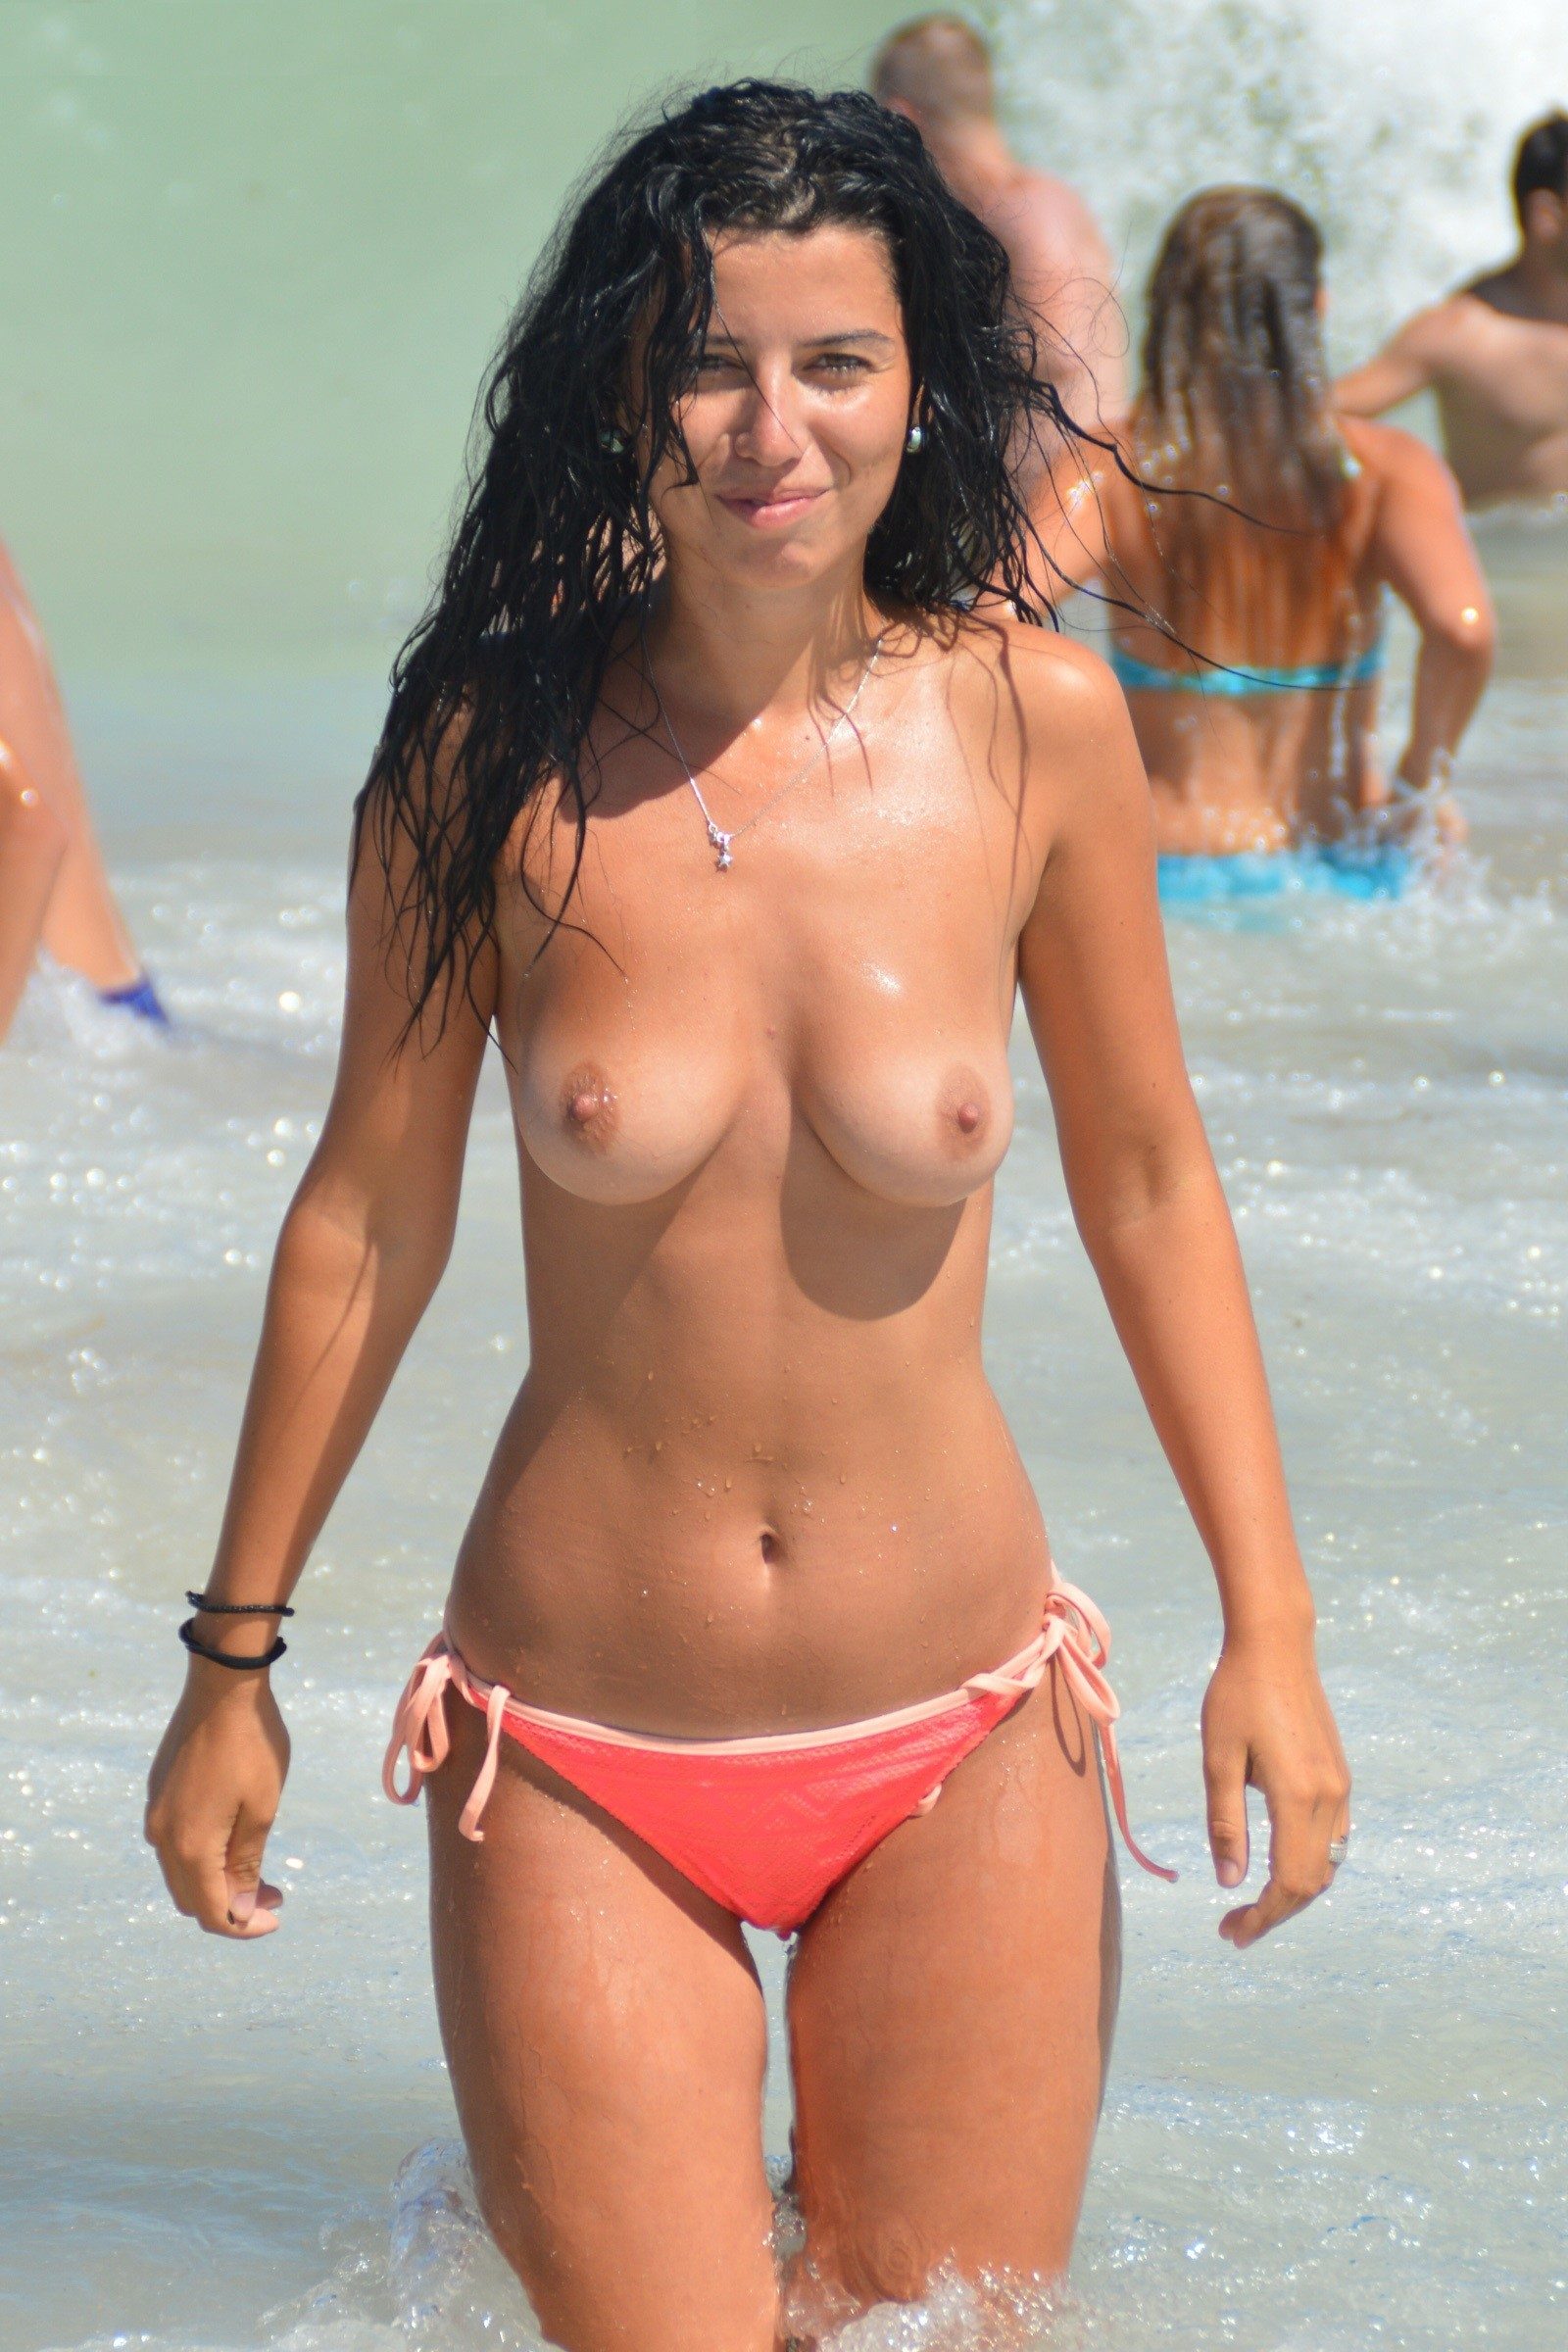 nudists-girls-boobs-beach-topless-mix-vol7-64